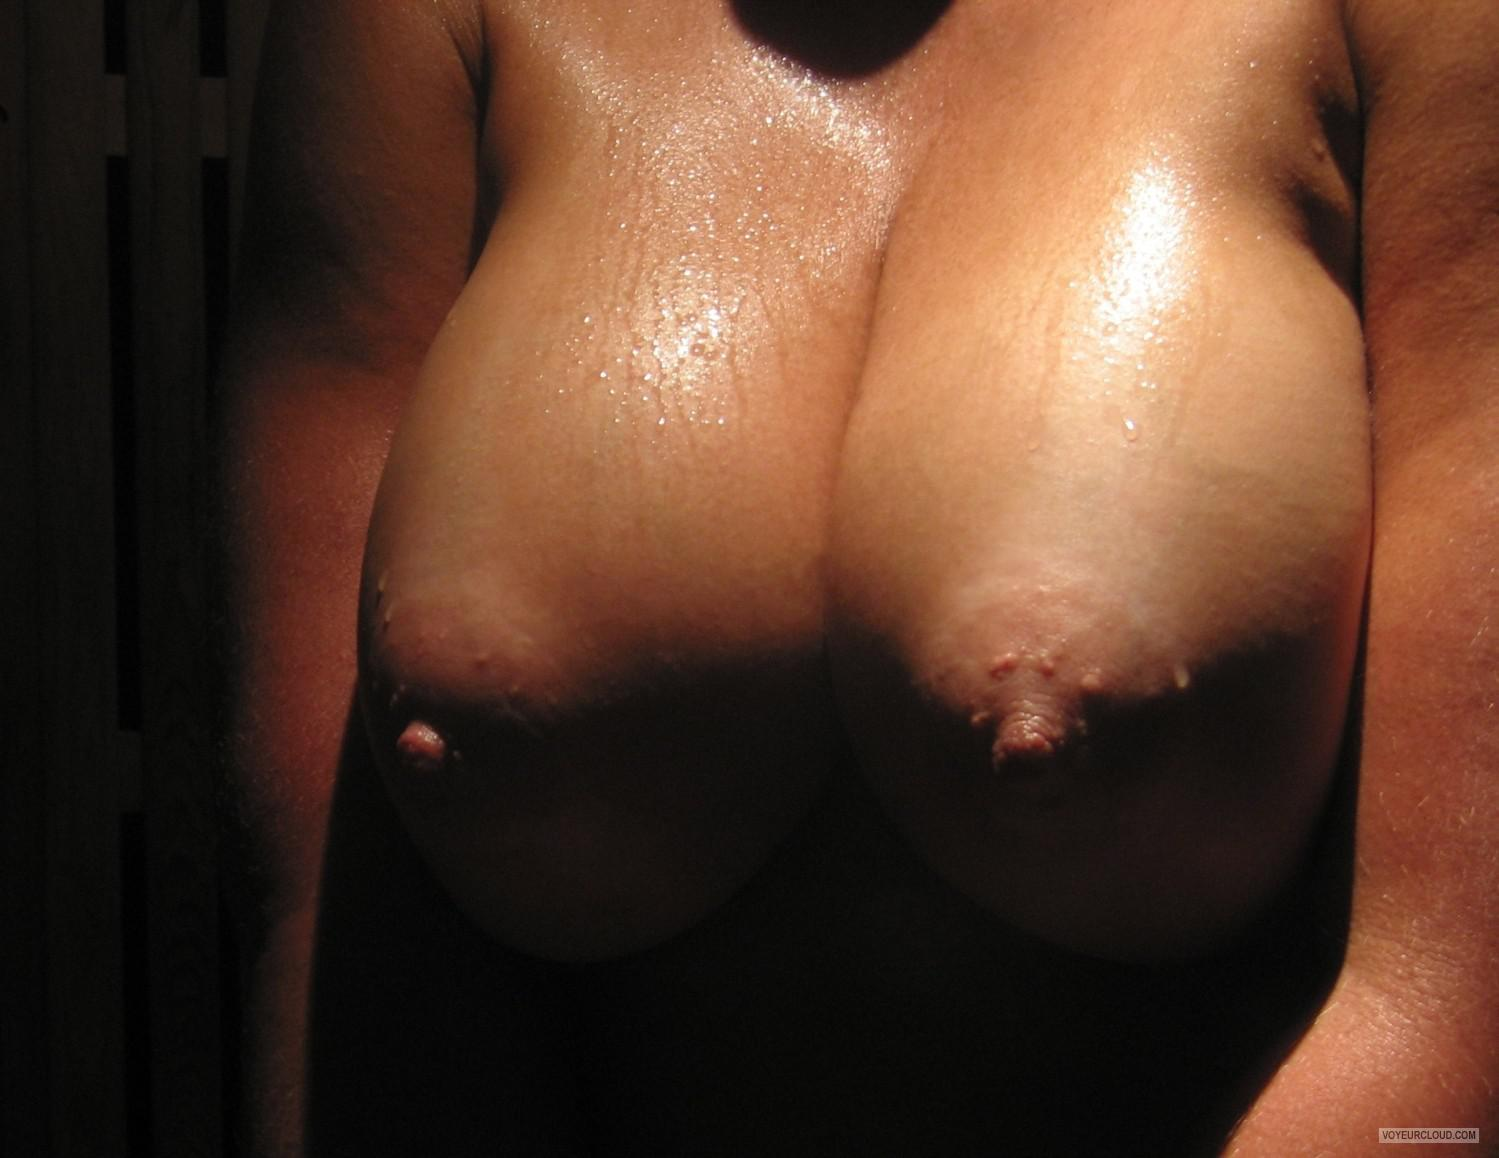 Tit Flash: My Big Tits - Faans Flasher from United States